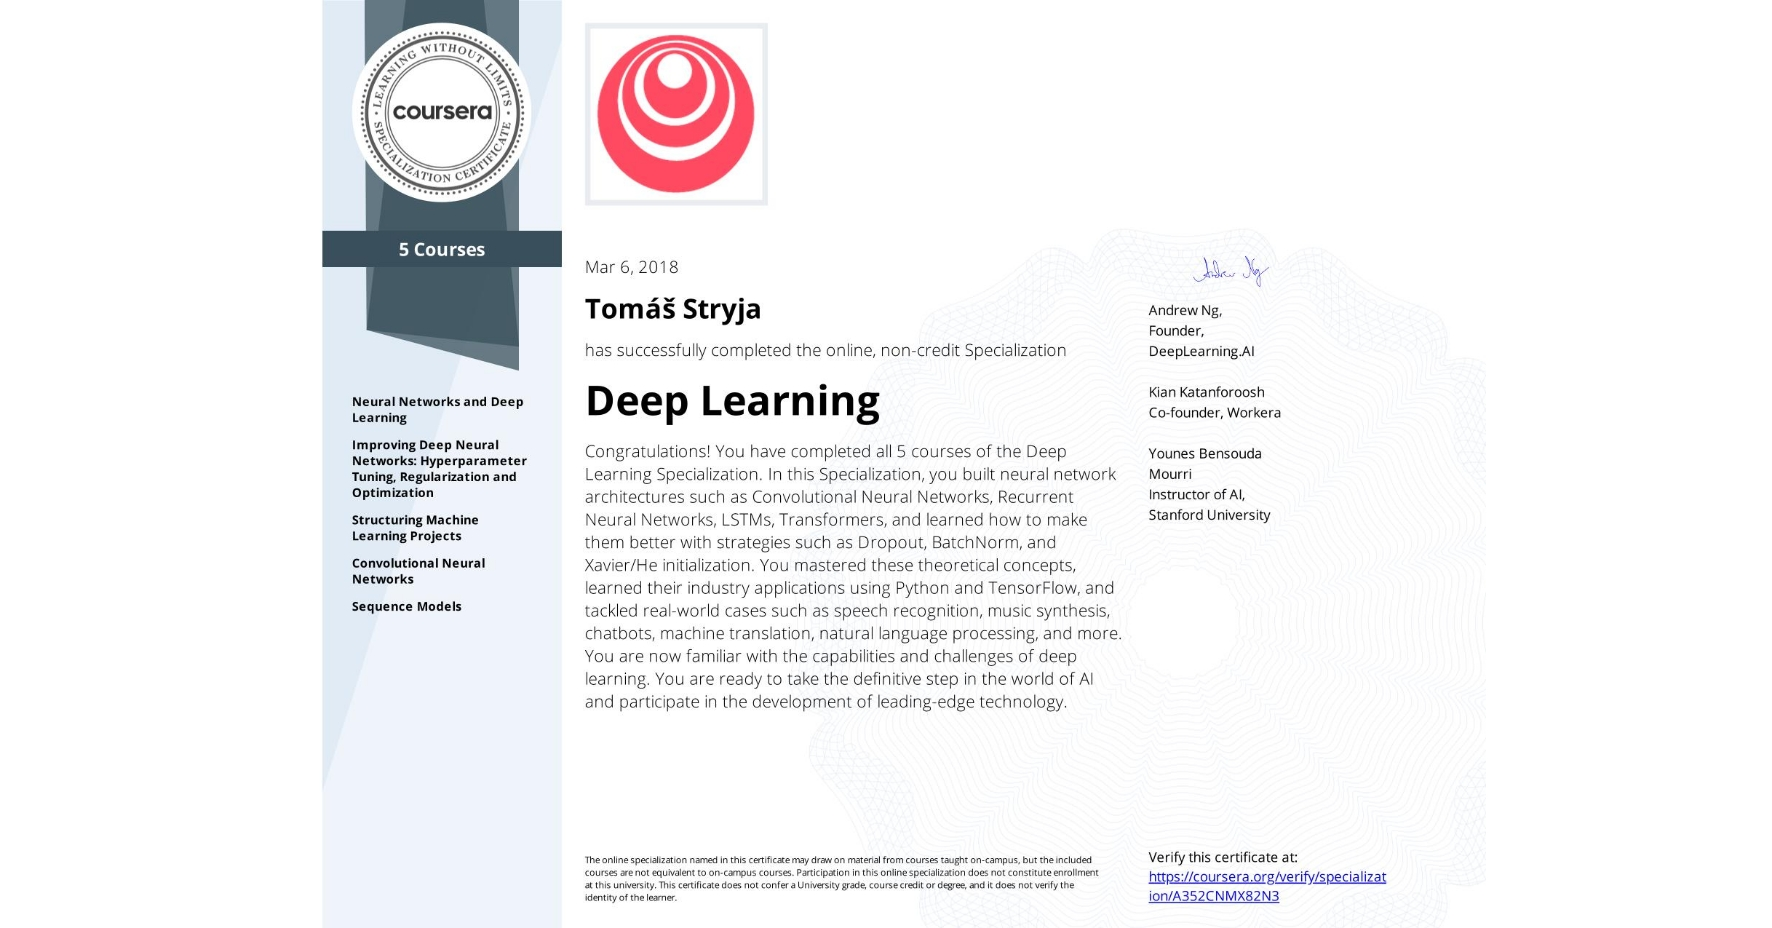 View certificate for Tomáš Stryja, Deep Learning, offered through Coursera. Congratulations! You have completed all five courses of the Deep Learning Specialization.  In this Specialization, you built neural network architectures such as Convolutional Neural Networks, Recurrent Neural Networks, LSTMs, Transformers and learned how to make them better with strategies such as Dropout, BatchNorm, Xavier/He initialization, and more. You mastered these theoretical concepts and their application using Python and TensorFlow and also tackled real-world case studies such as autonomous driving, sign language reading, music generation, computer vision, speech recognition, and natural language processing.   You're now familiar with the capabilities, challenges, and consequences of deep learning and are ready to participate in the development of leading-edge AI technology.